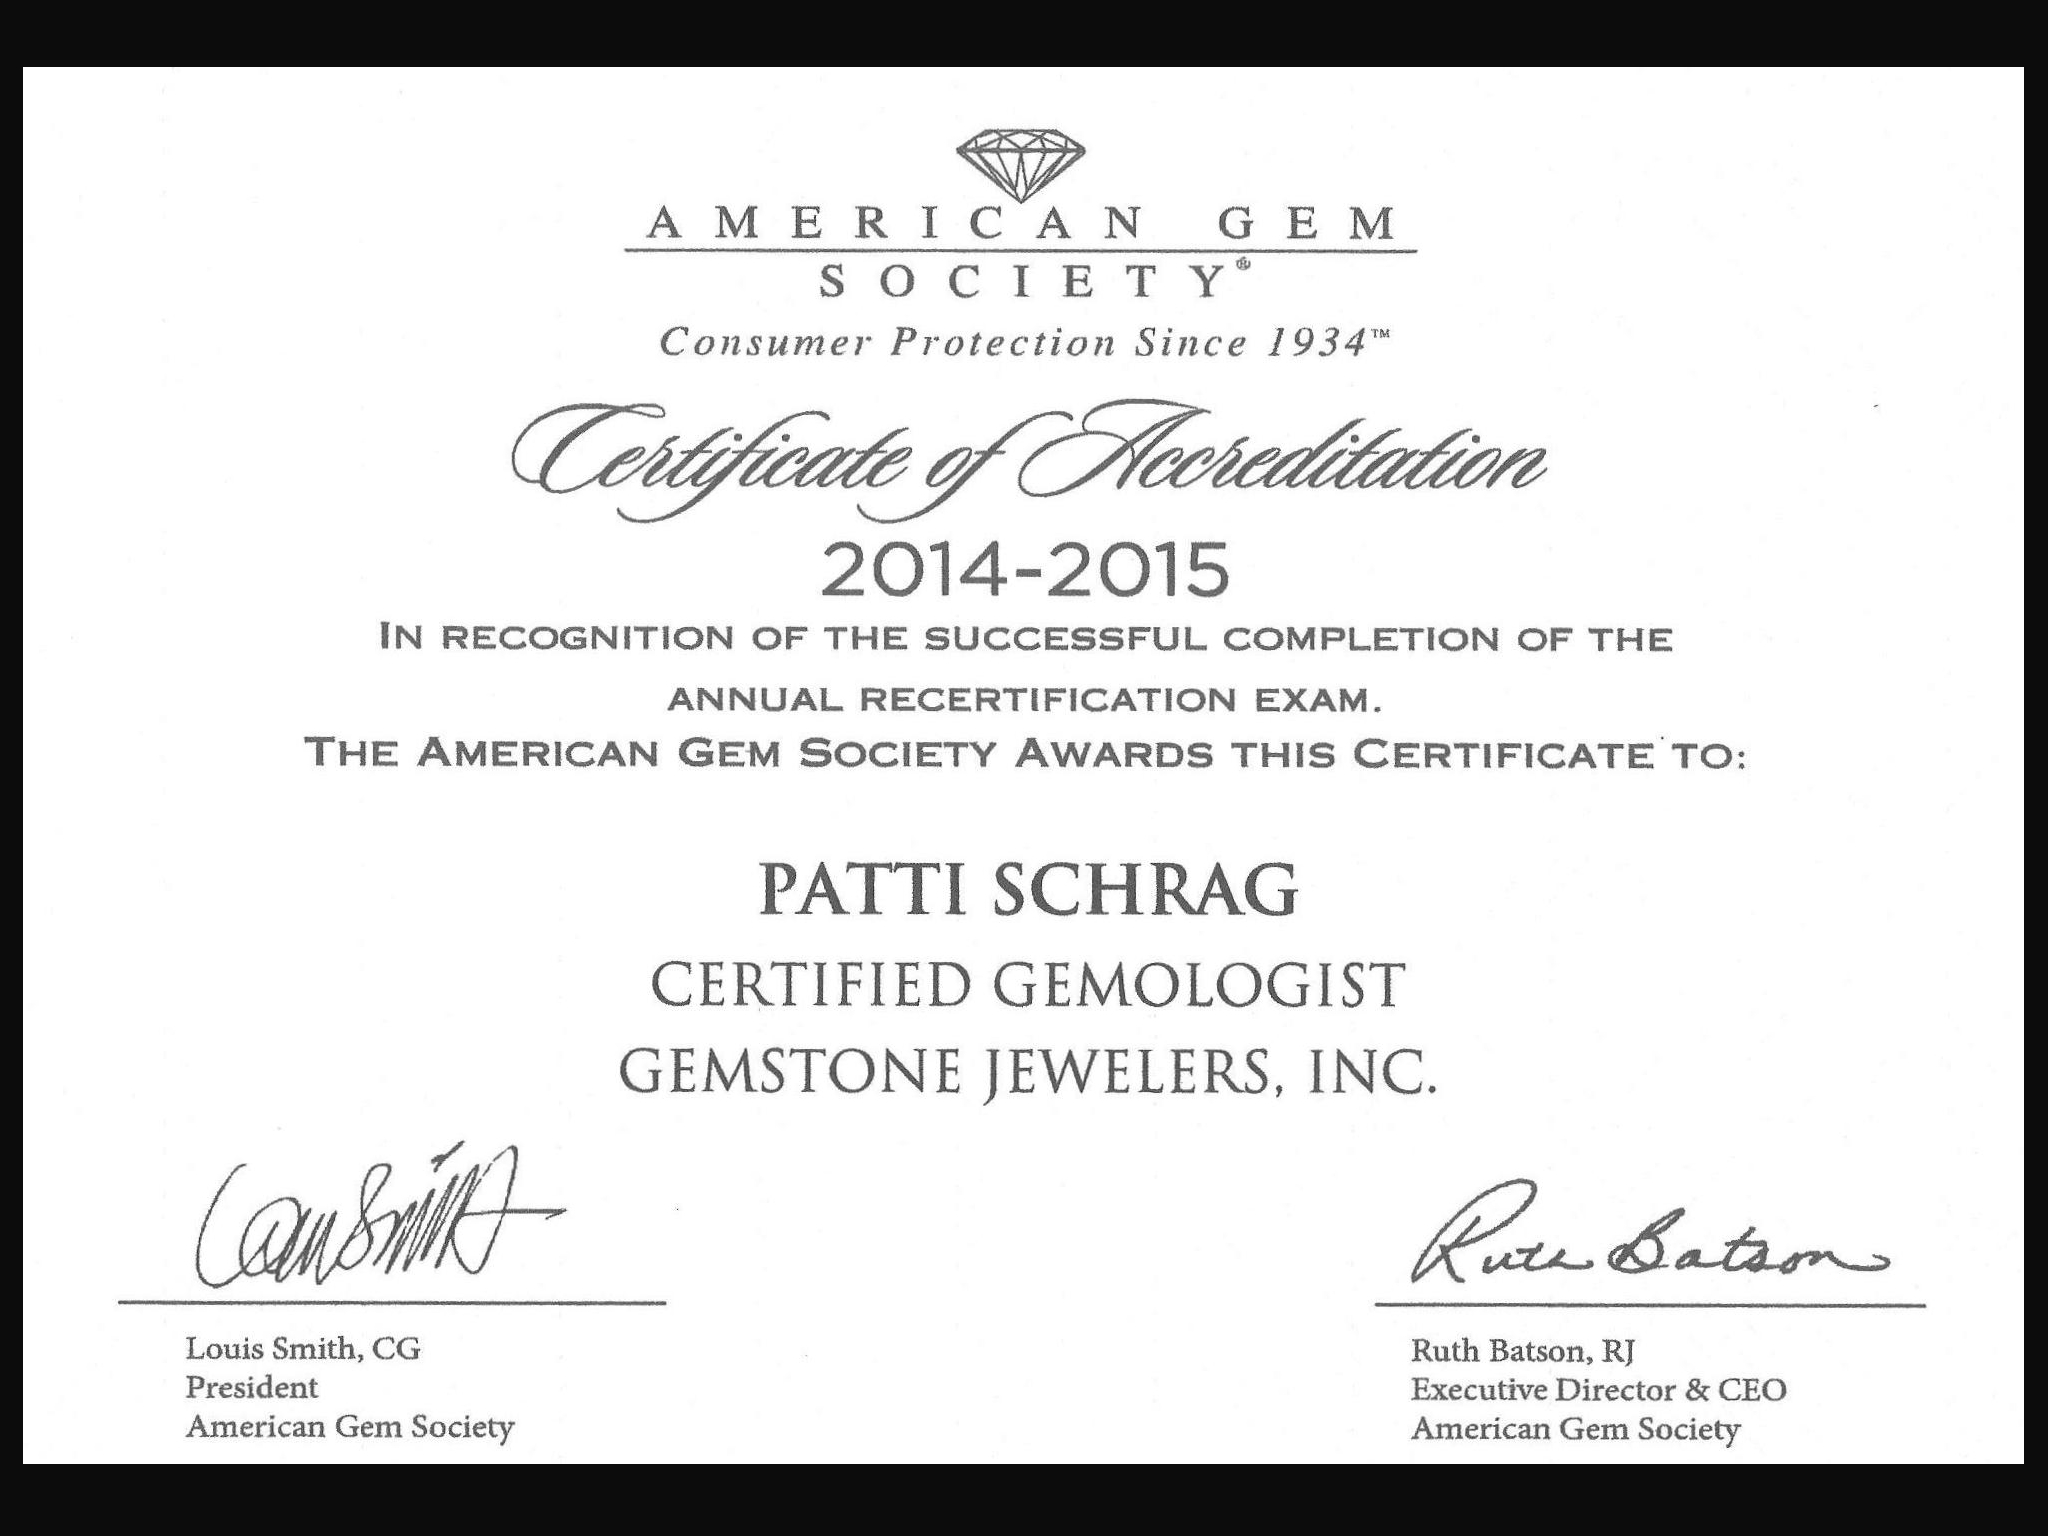 American gem society certification 1betcityfo Image collections